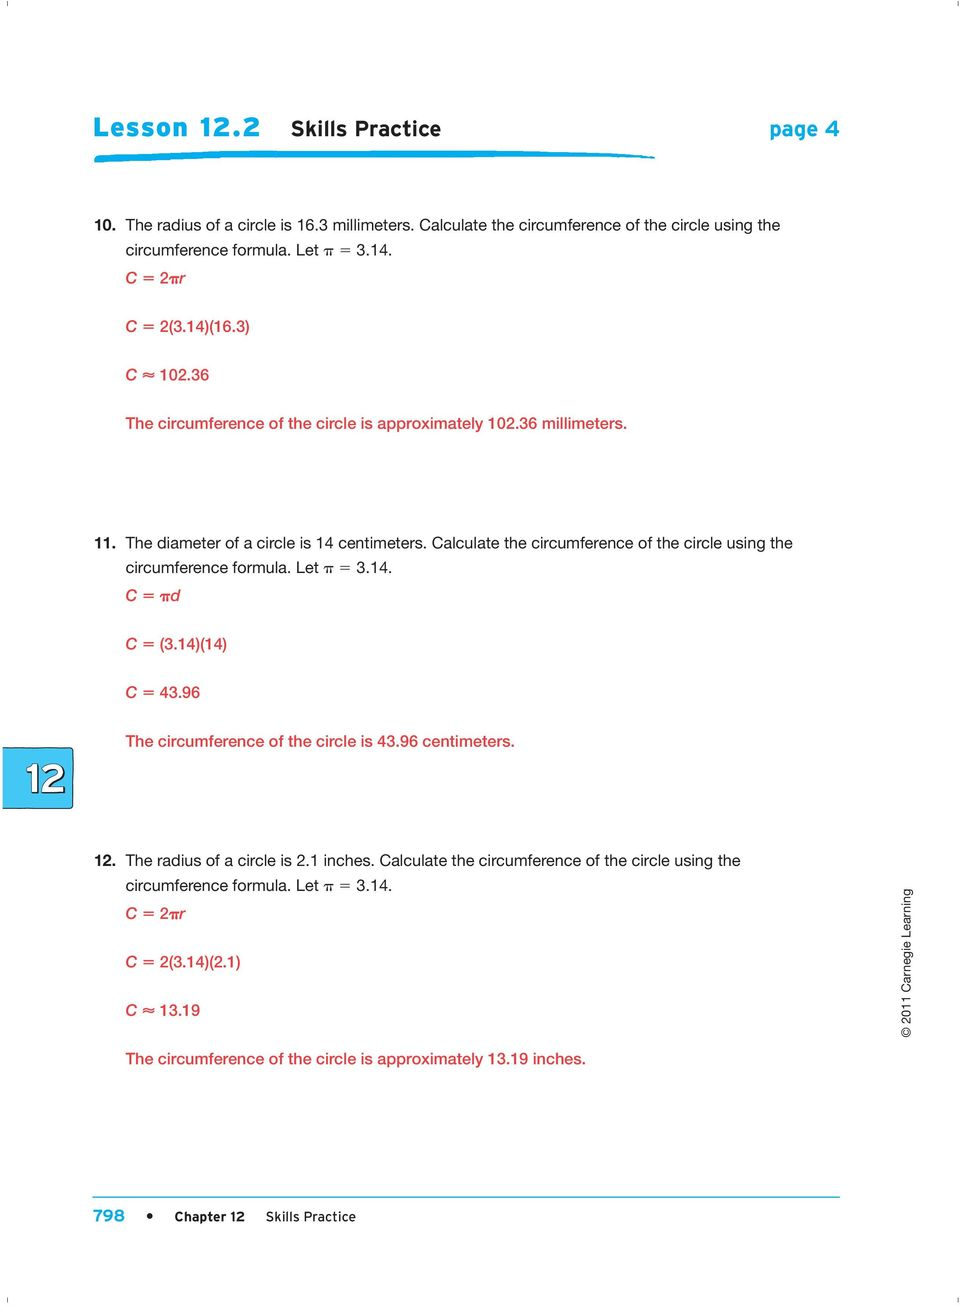 Calculate The Circumference Of The Circle Using The Circumference Formula  Let P 5 314